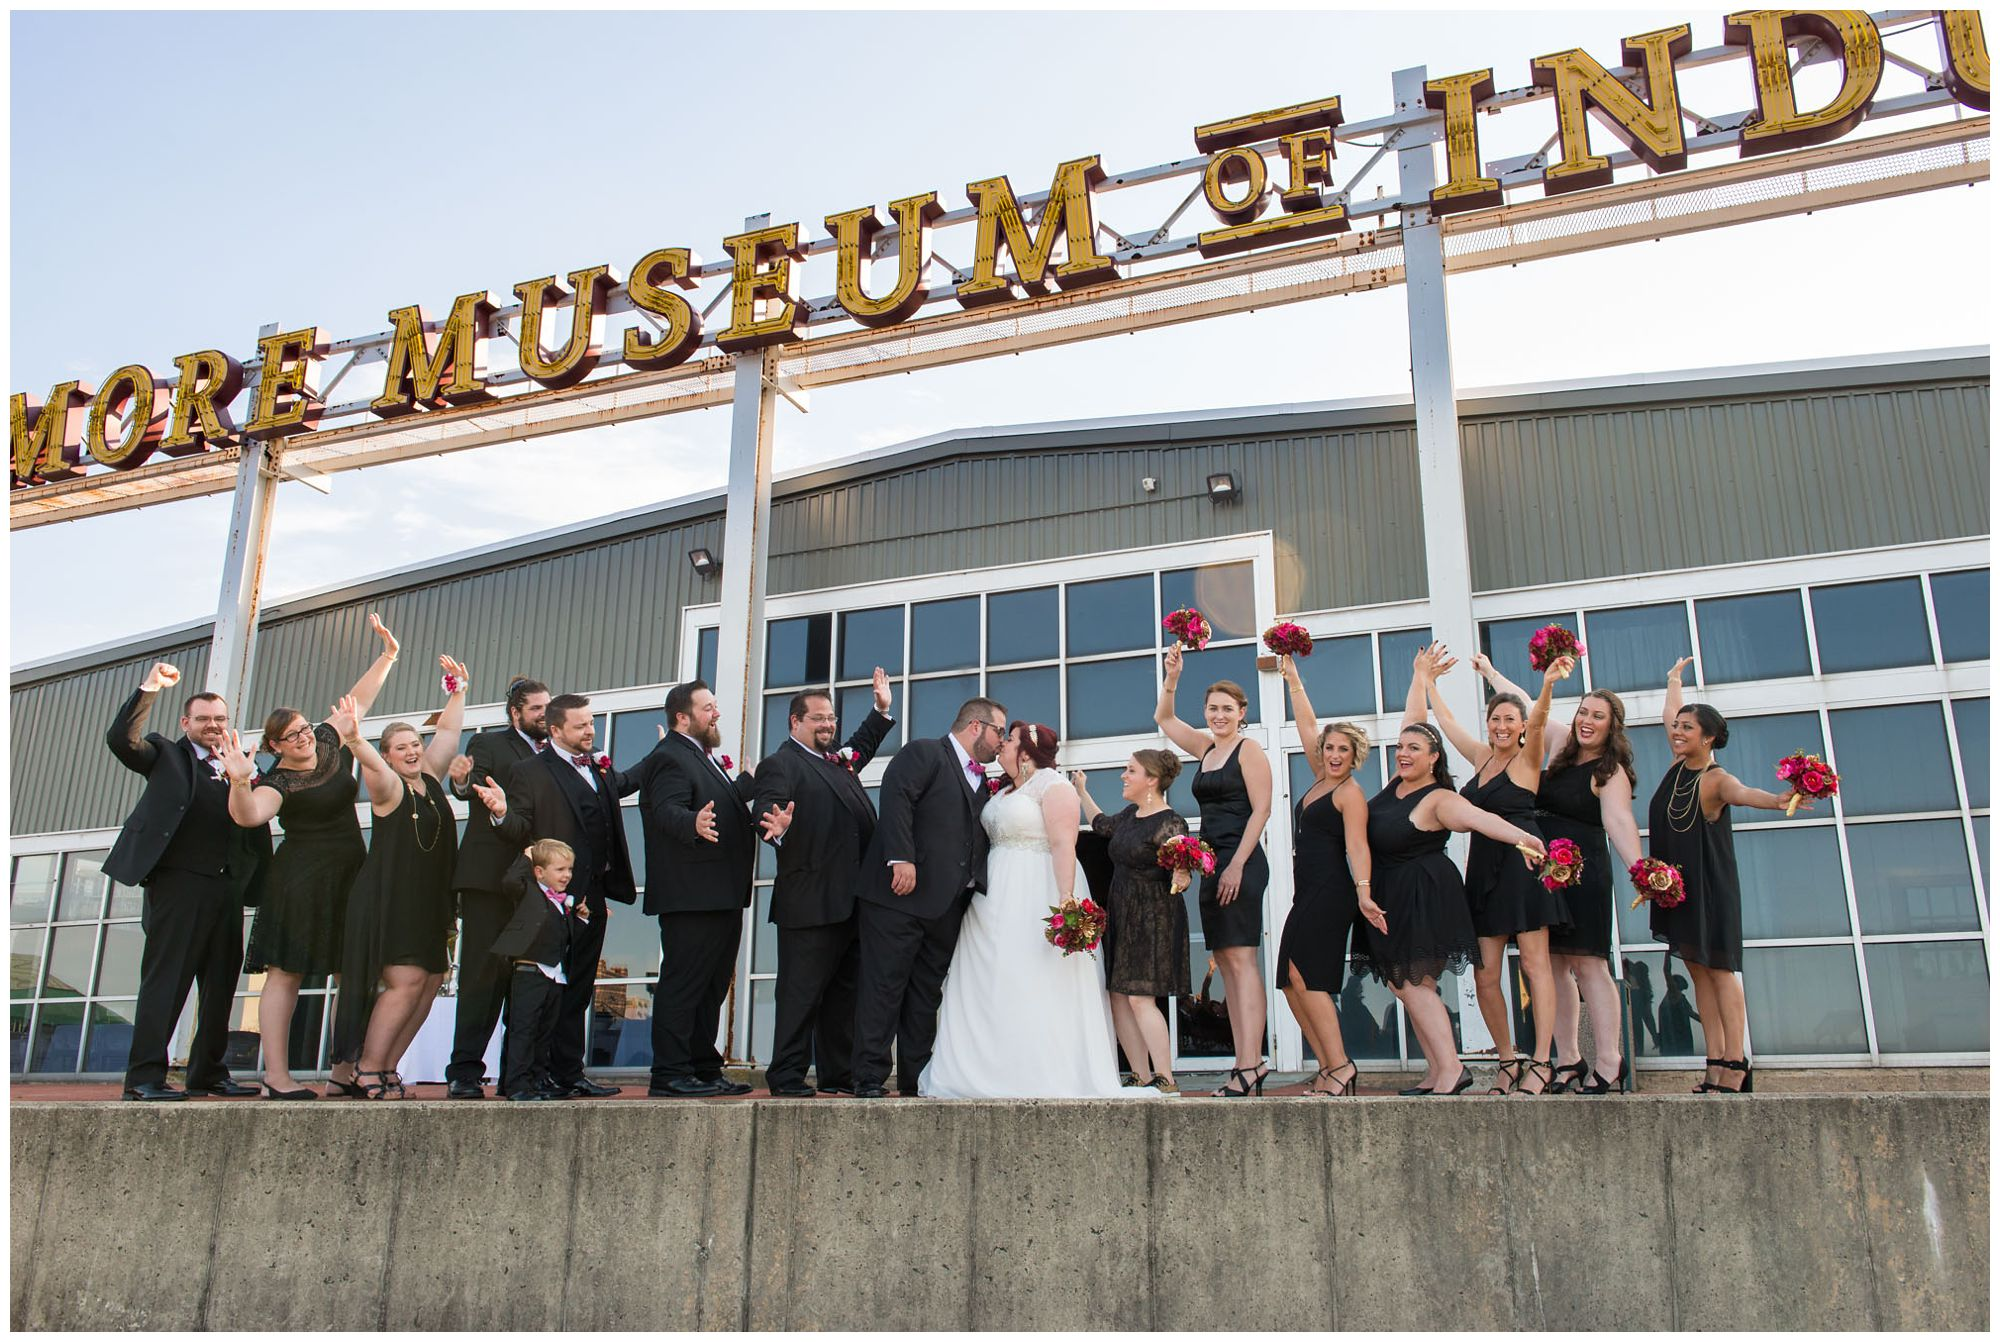 Bridal party at Baltimore Museum of Industry wedding